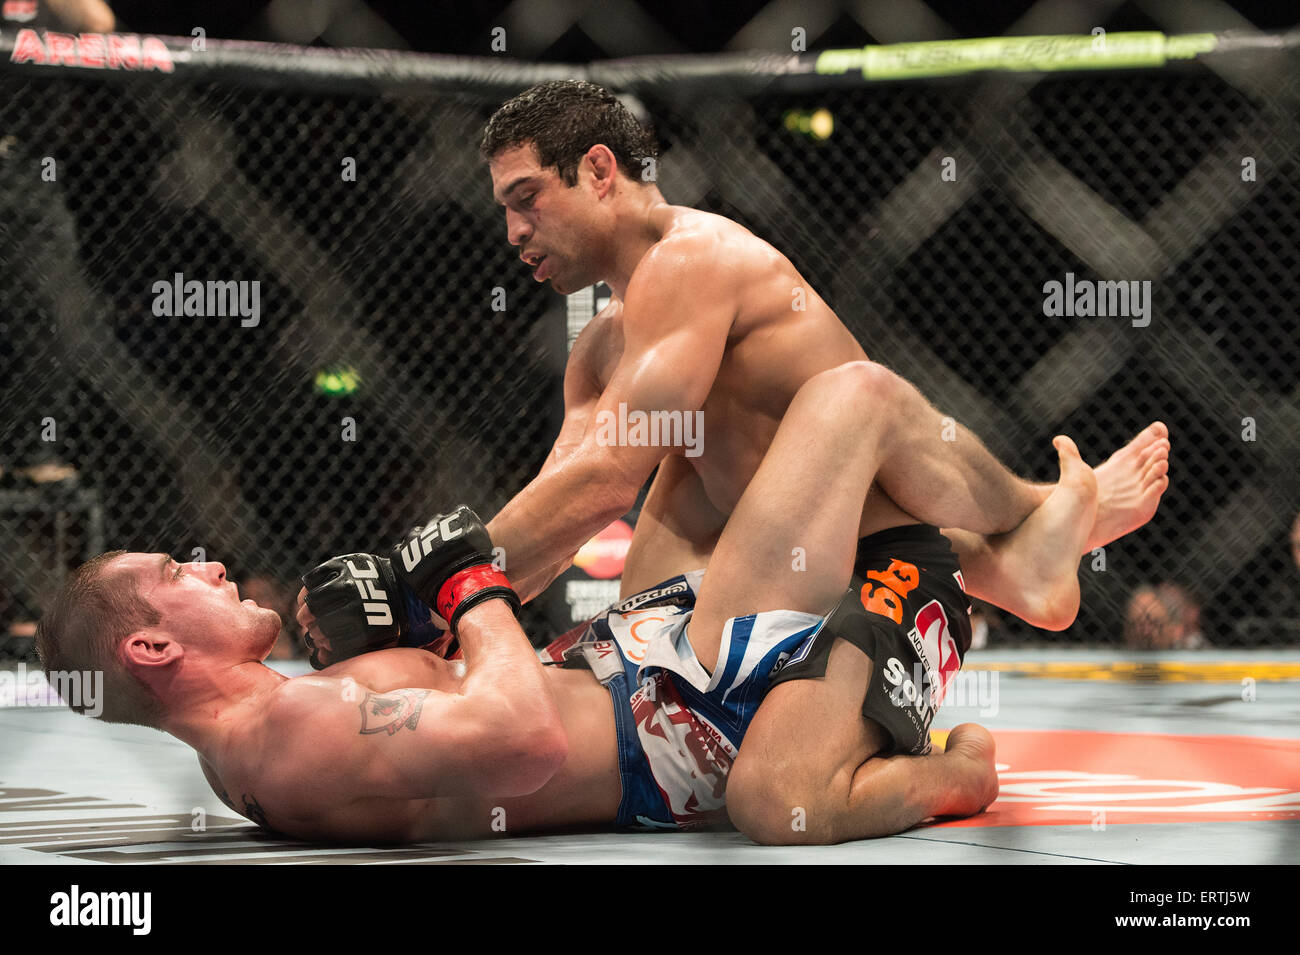 Fighters in the UFC MMA Ultimate Fighting Championship fight wrestle and grapple inside the octagon cage - Stock Image